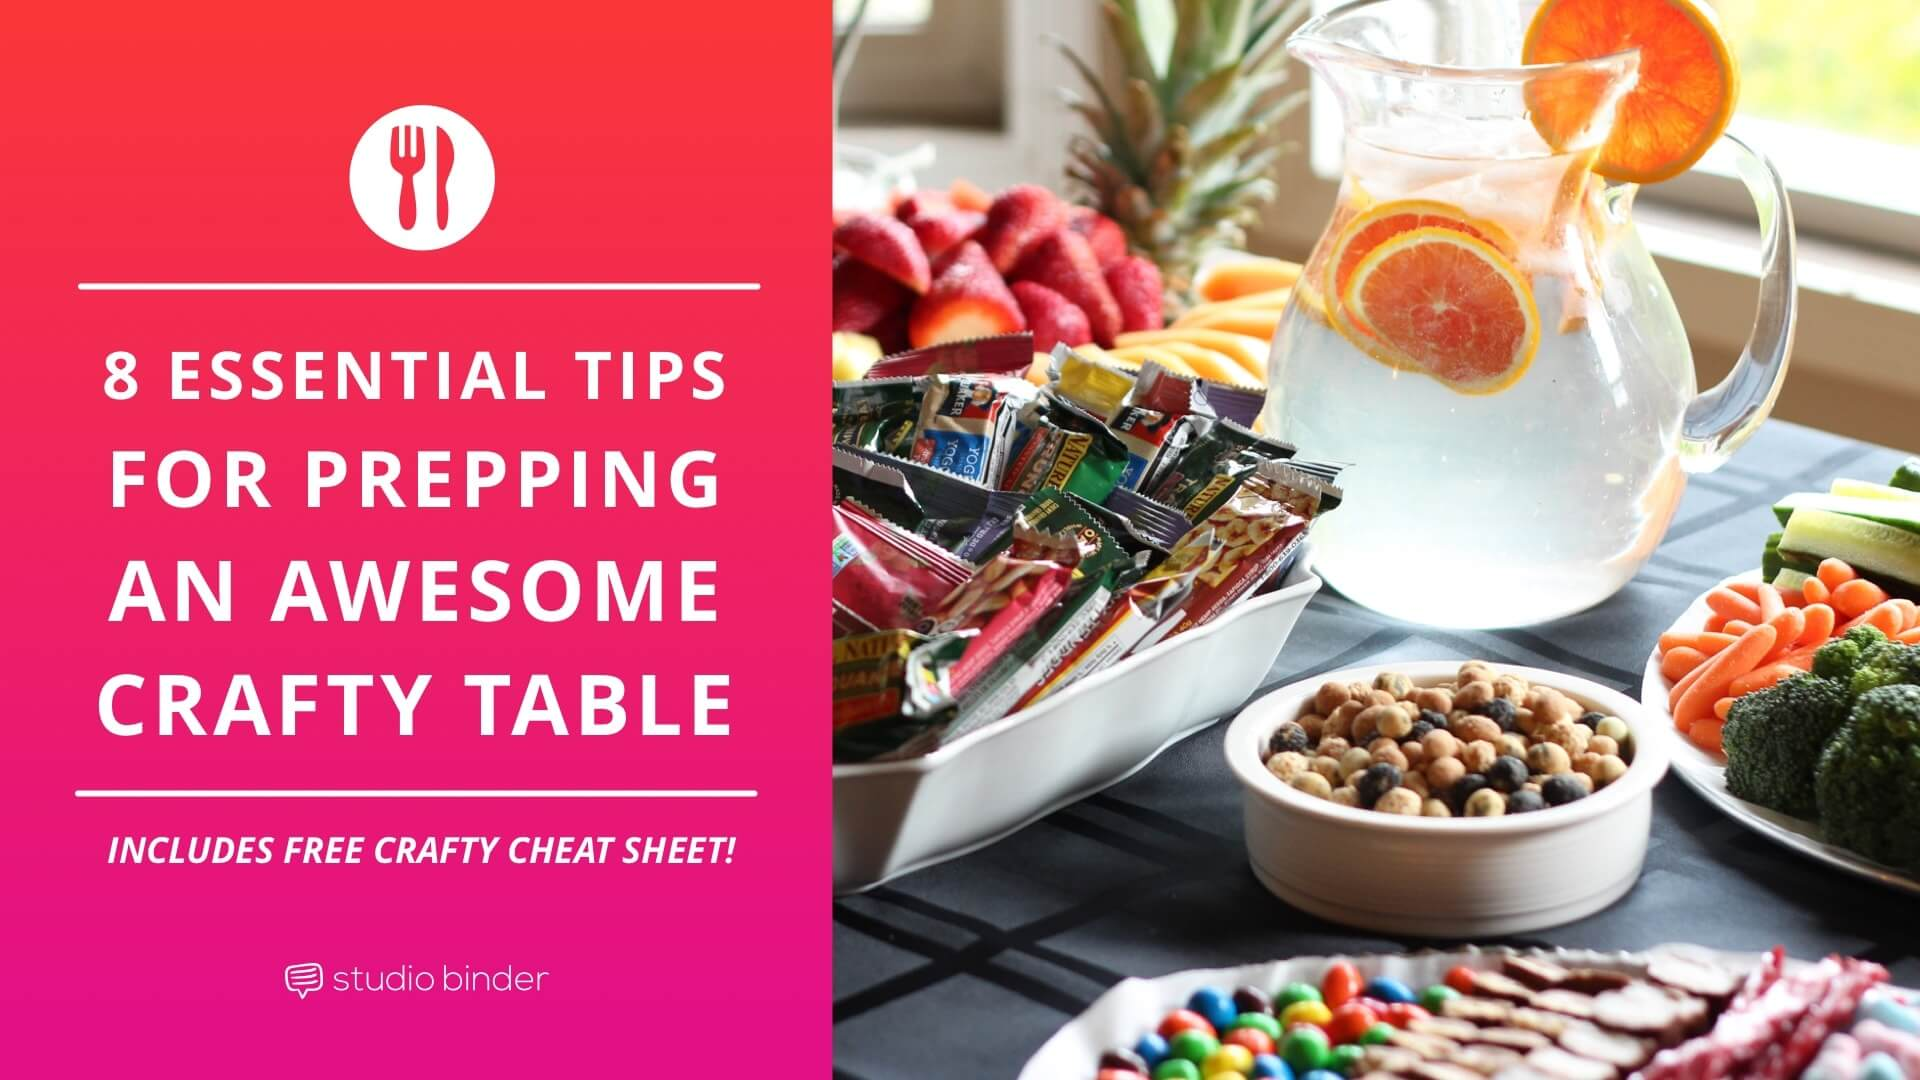 8 Essential Tips for Prepping an Awesome Craft Services Table - Social Image - StudioBinder-min